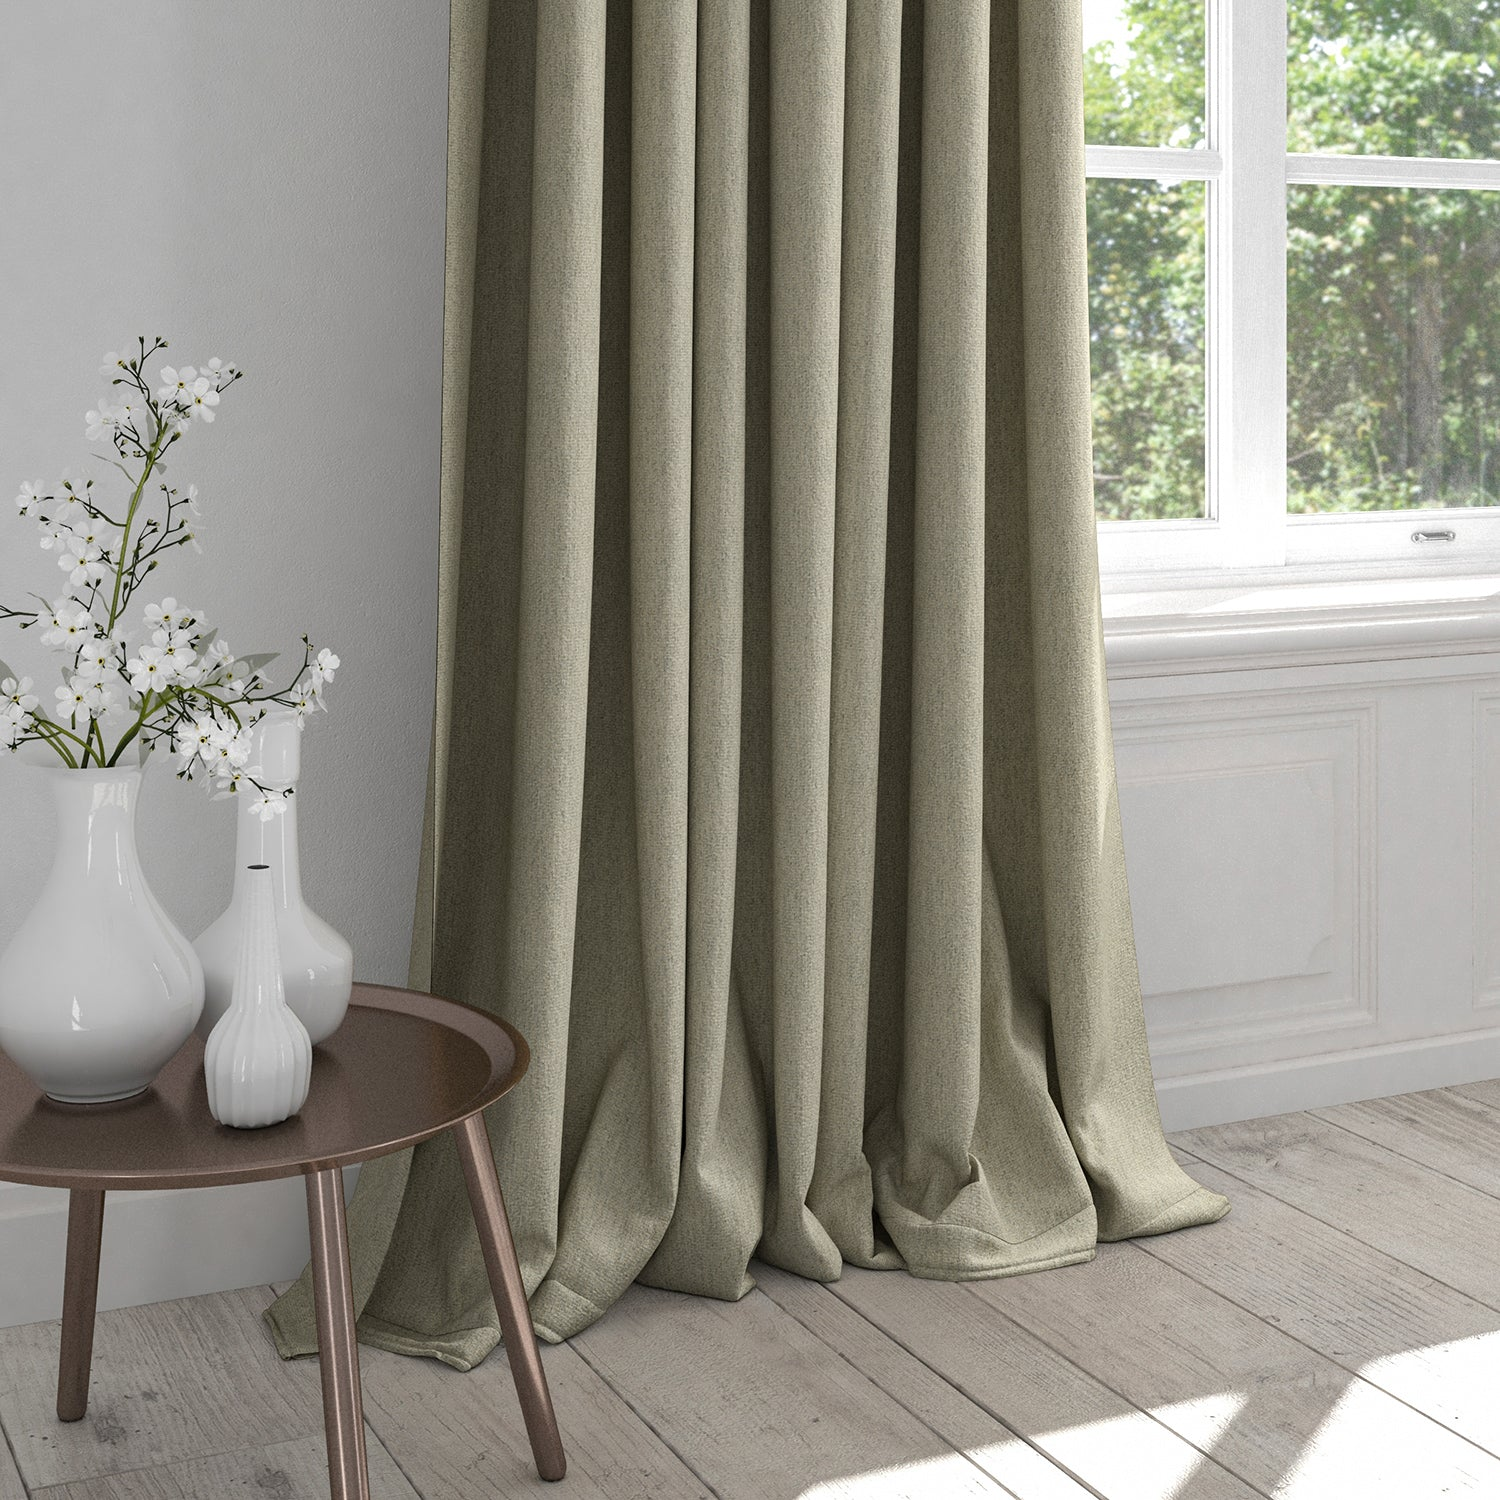 Curtain in a grey fabric with a neutral woven geometric design